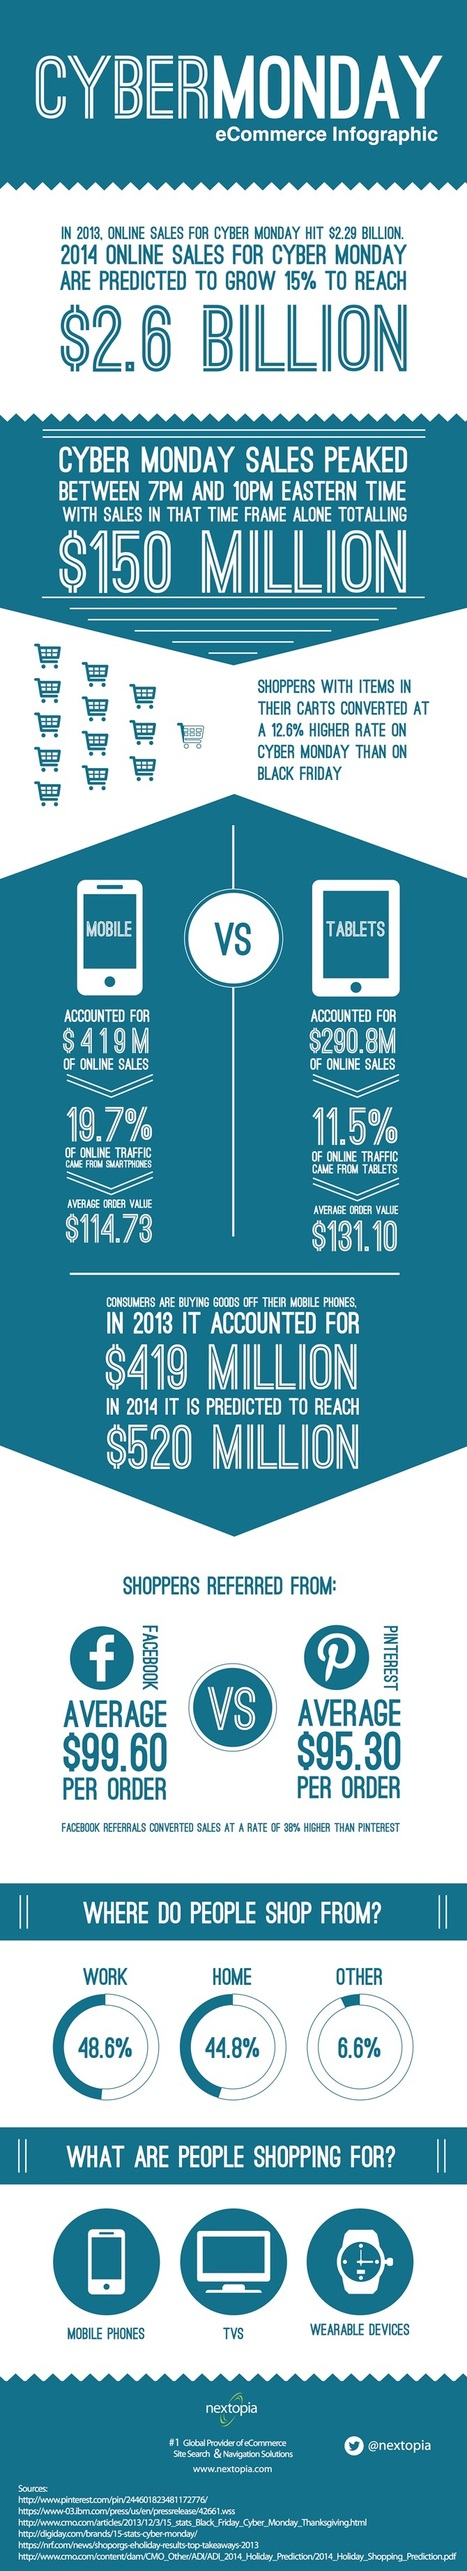 Cyber Monday by the Numbers #Infographic | MarketingHits | Scoop.it